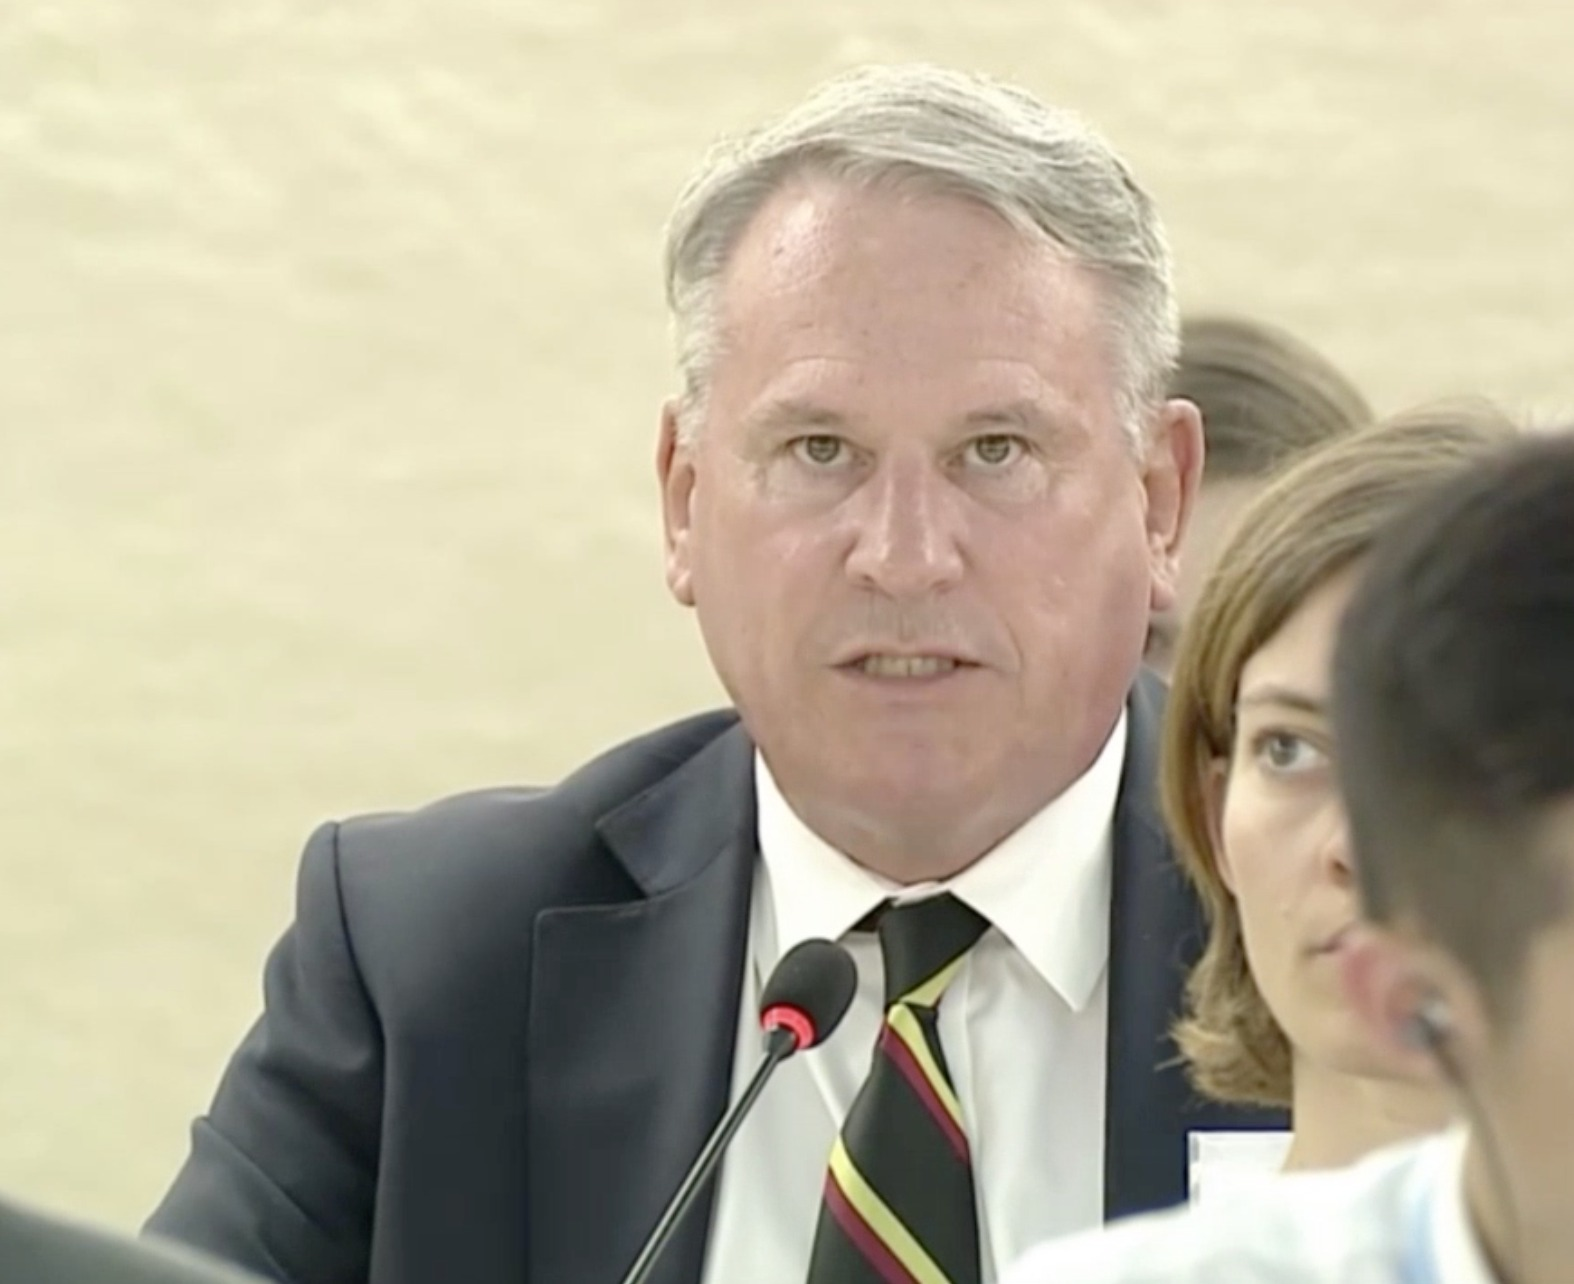 Submission by Colonel (Retd) Richard Kemp CBE  on behalf of The High Level Military Group to  The United Nations Commission of Inquiry on the 2018 Protests in the Occupied Palestinian Territory